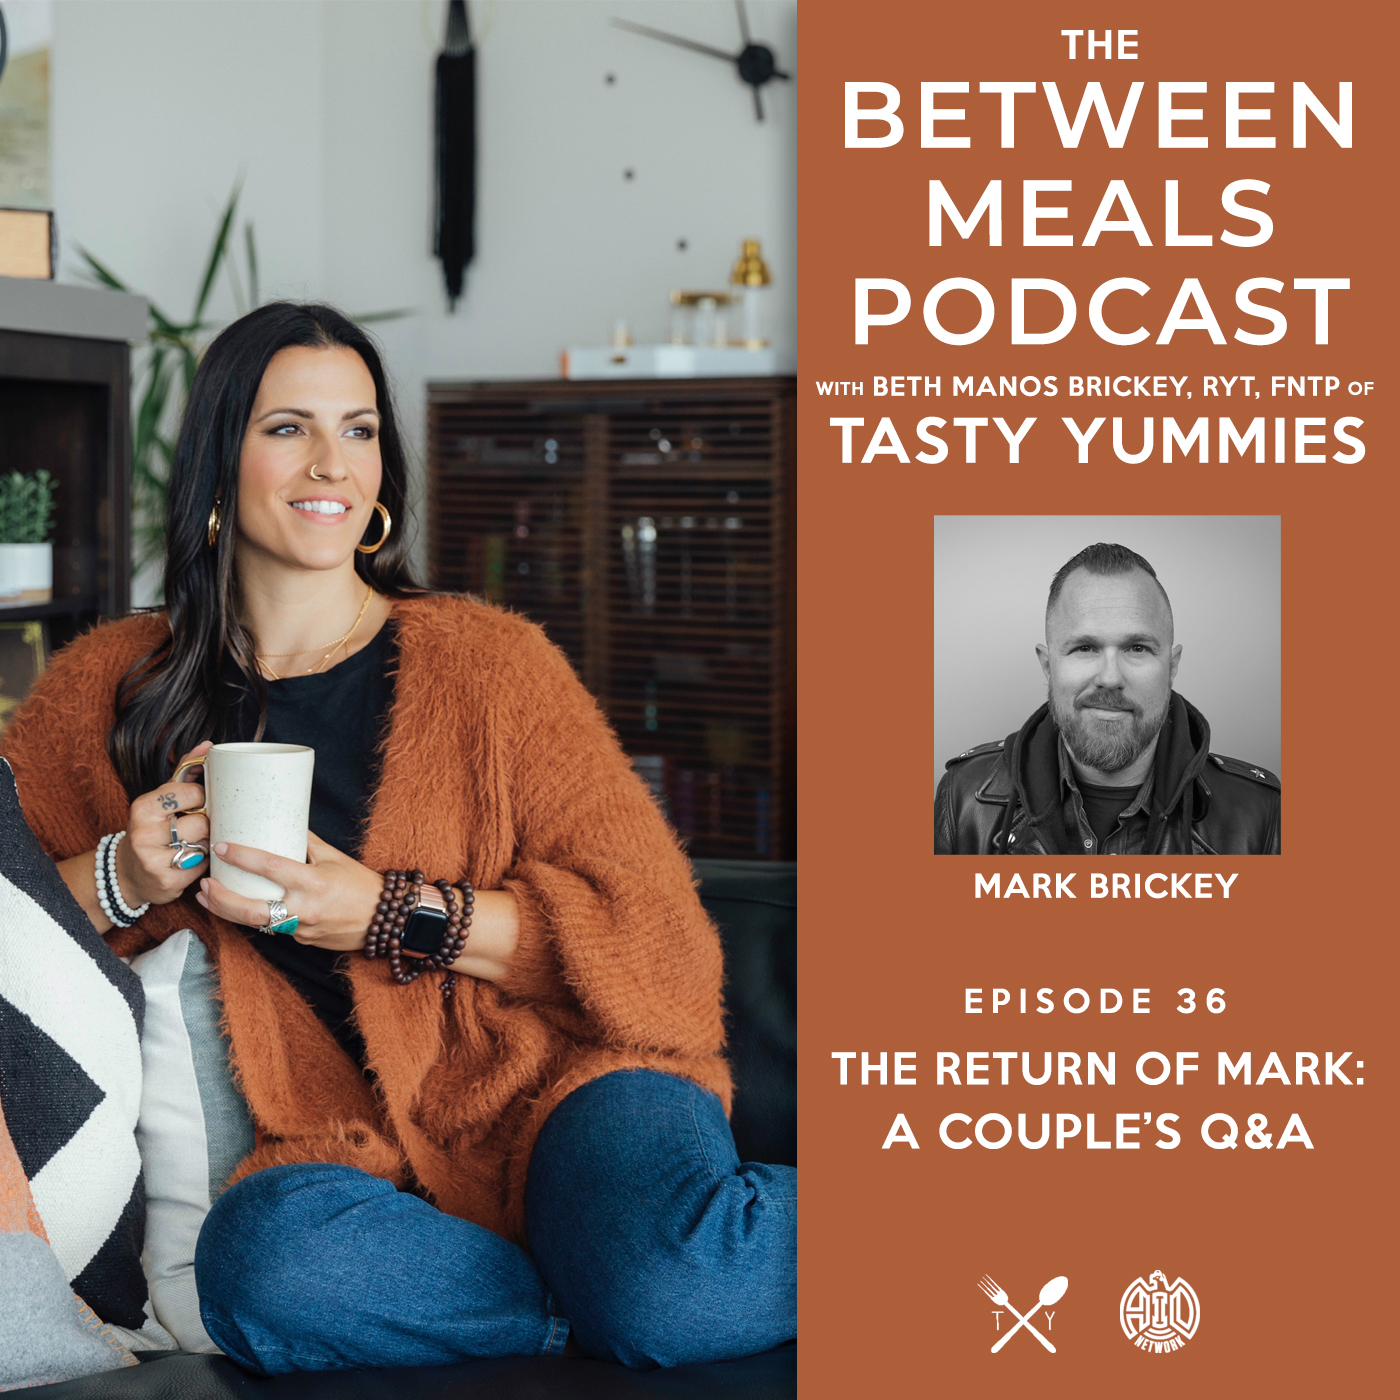 Between Meals Podcast. Episode 36: The Return of Mark. A Couple?s Q&A.